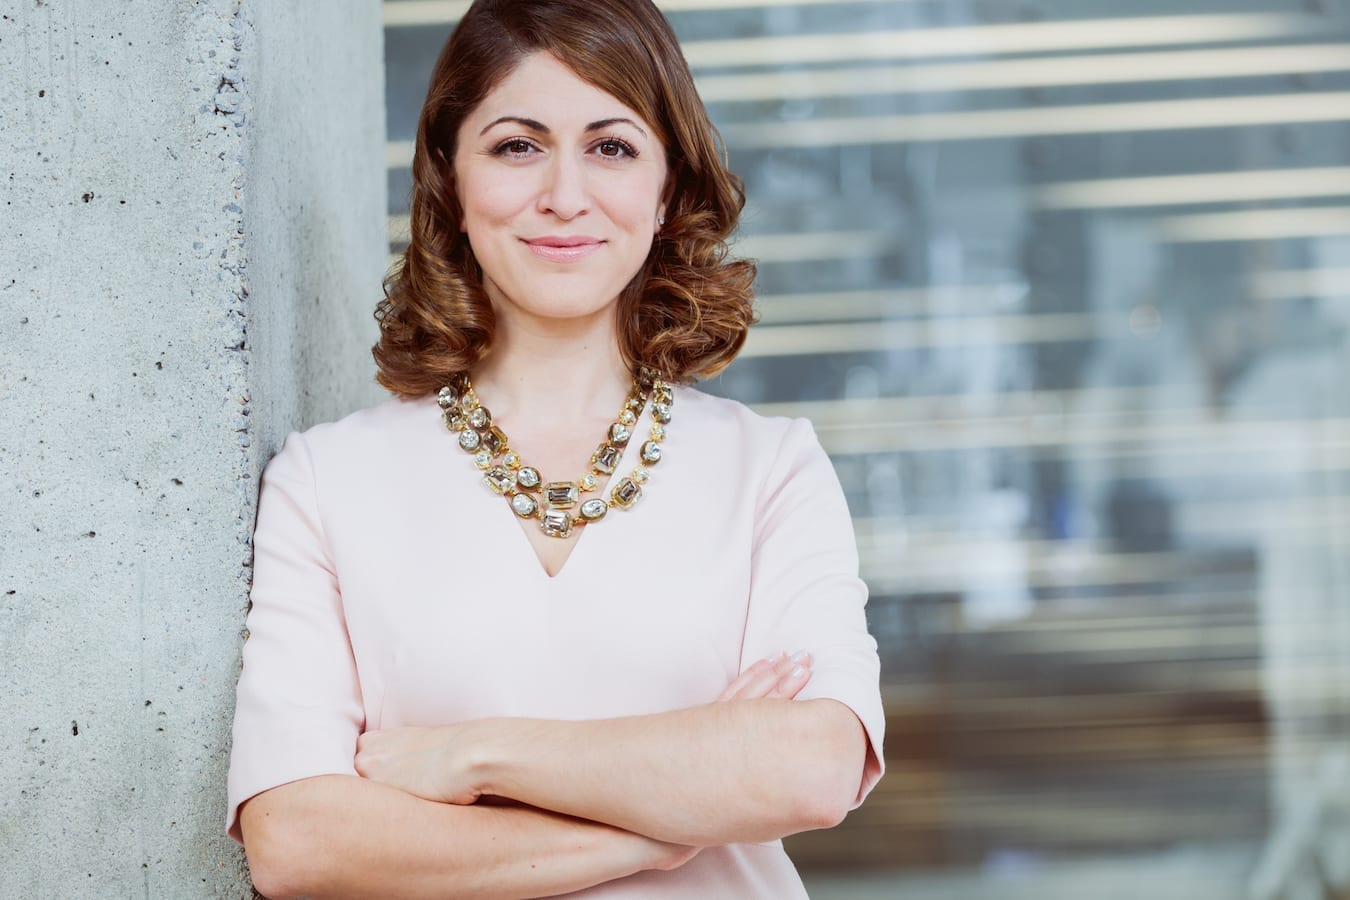 Taking Your Place with Confidence: 7 Questions for Olga Farman